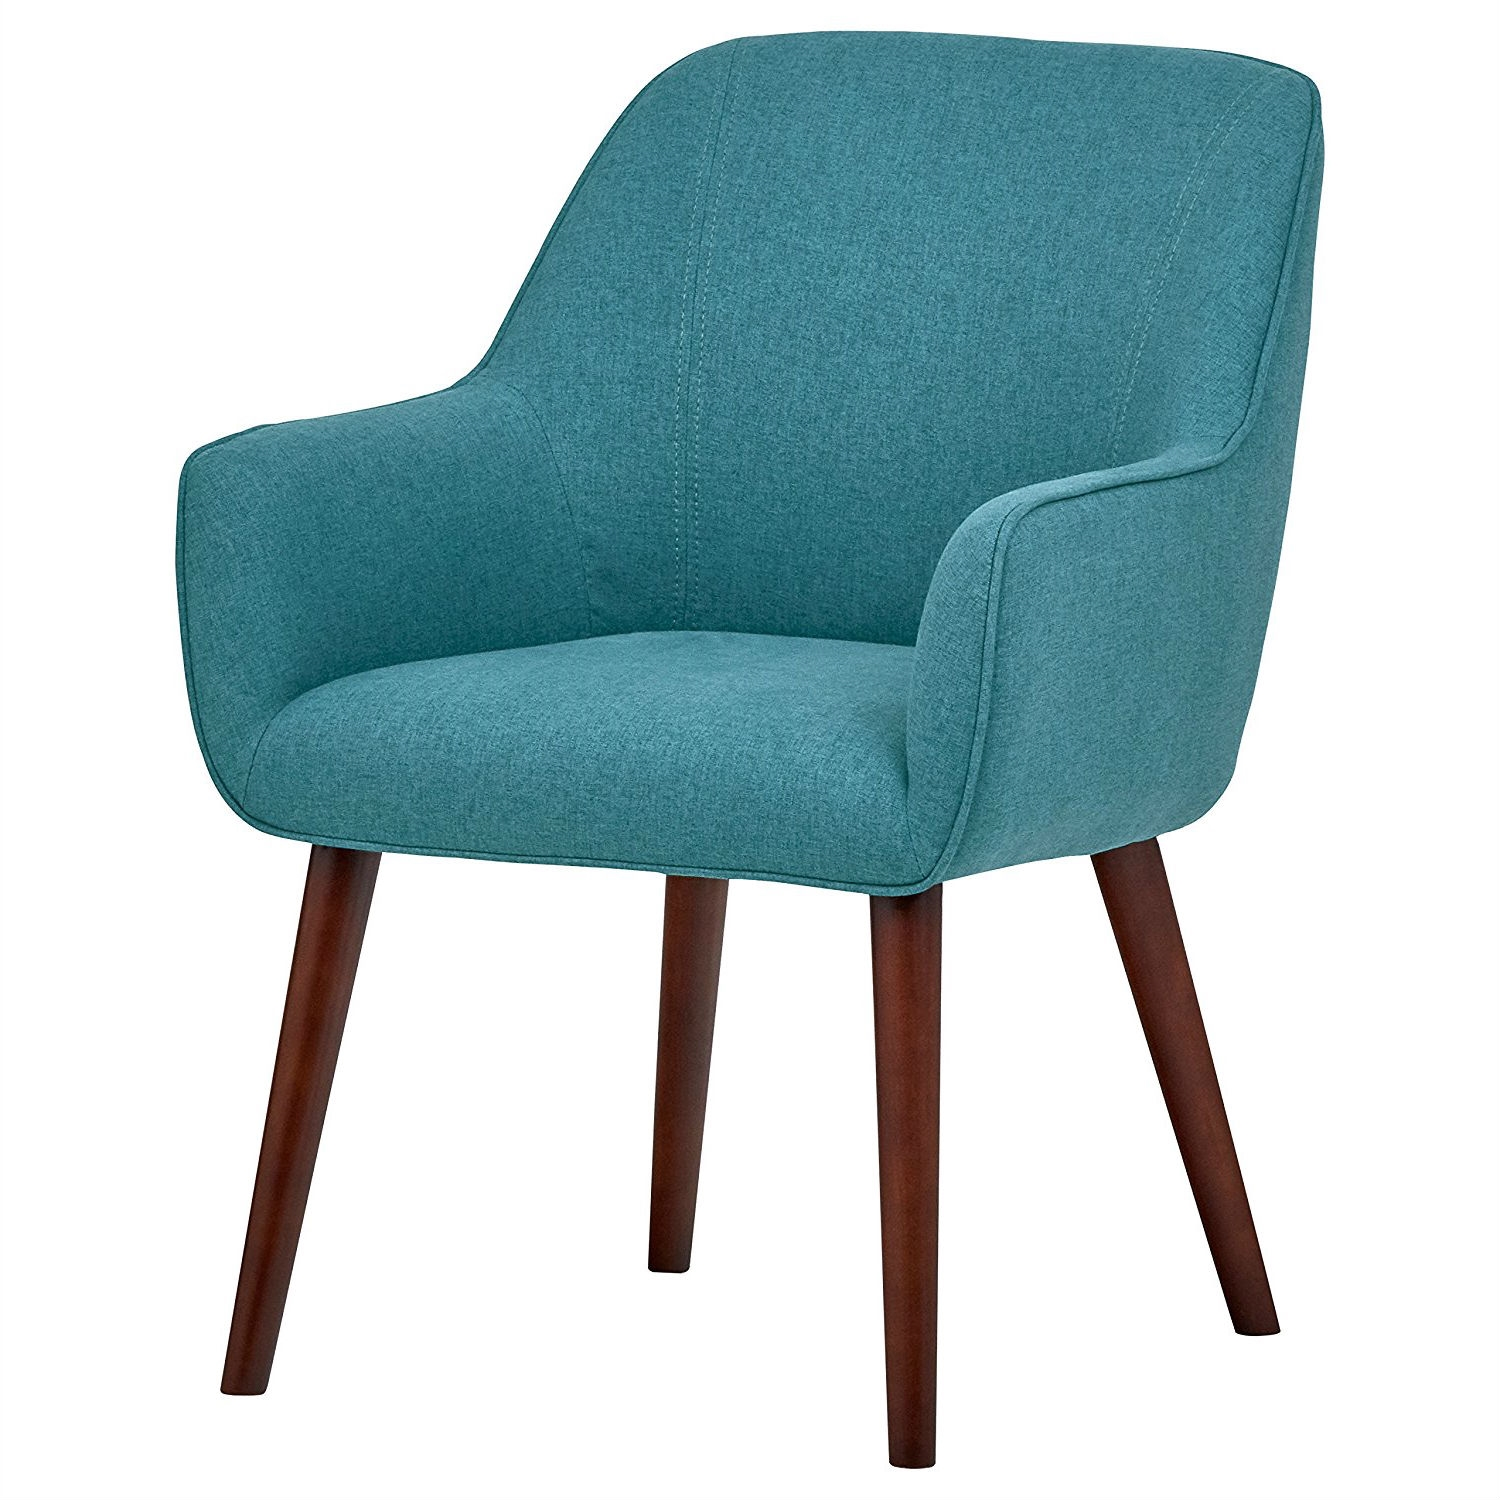 Excellent Modern Mid Century Style Accent Dining Chair With Wood Legs And Aqua Blue Upholstery Ibusinesslaw Wood Chair Design Ideas Ibusinesslaworg